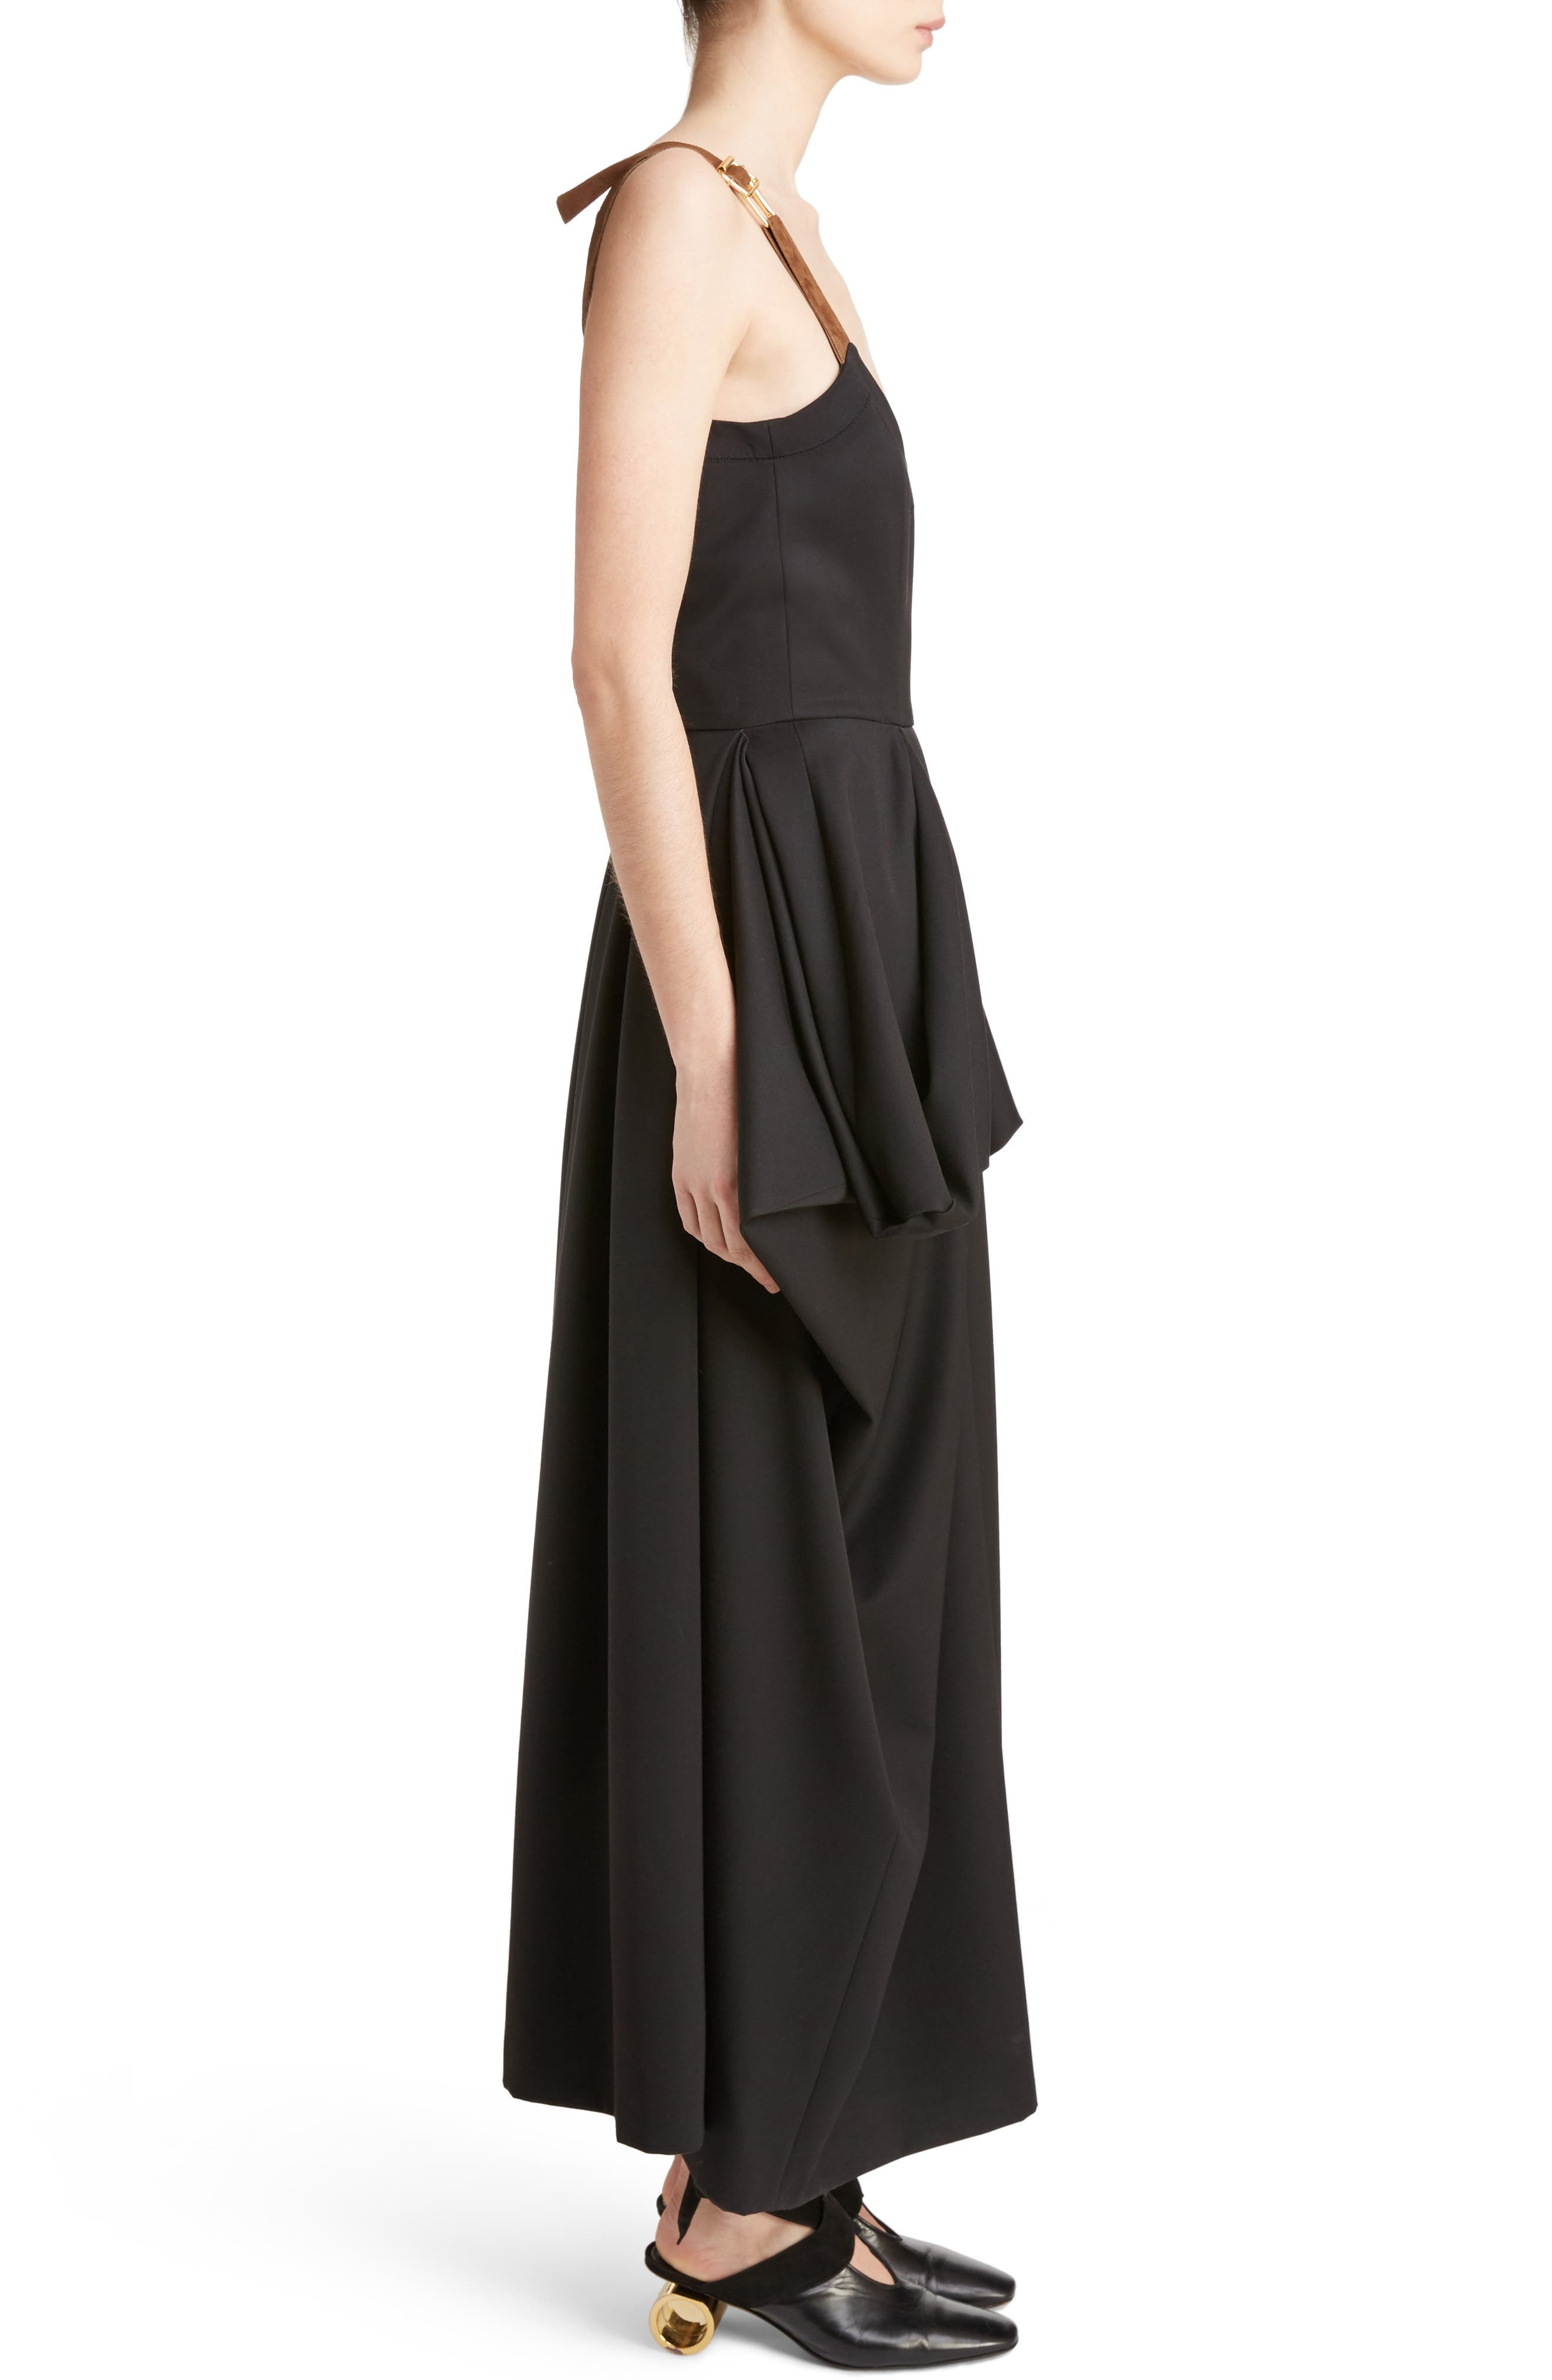 J.W.ANDERSON Drape Pocket Wool Dress,                             Alternate thumbnail 4, color,                             Black